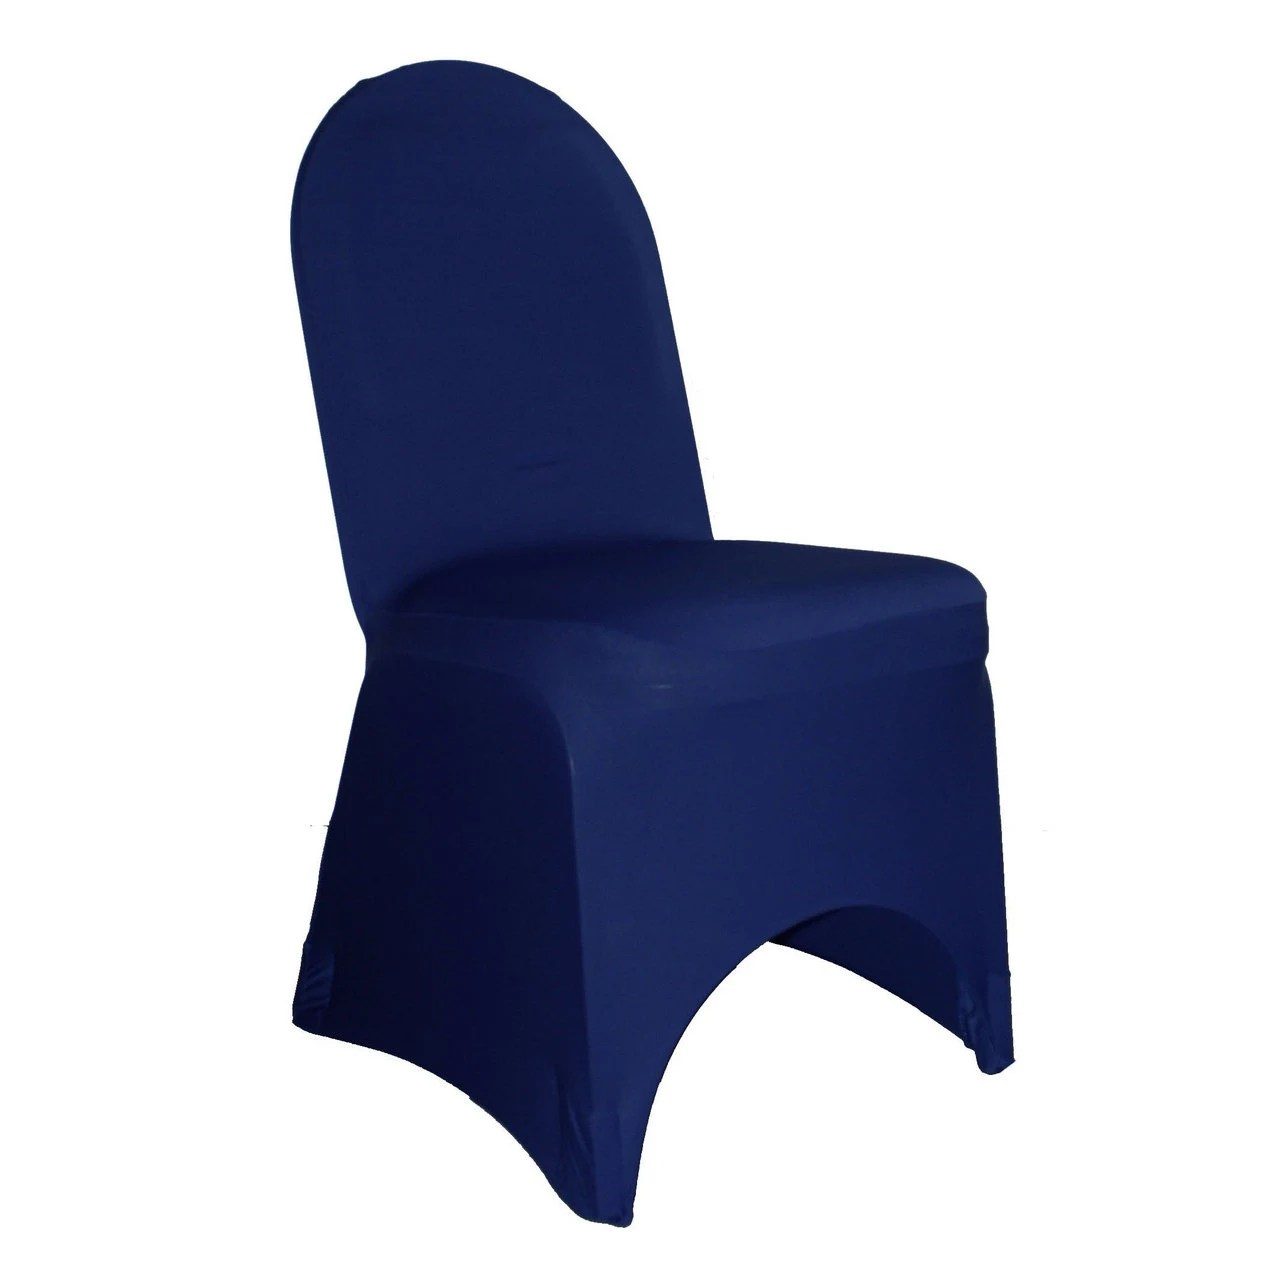 banquet chair covers rent back support for office south africa spandex cover navy blue wholesale